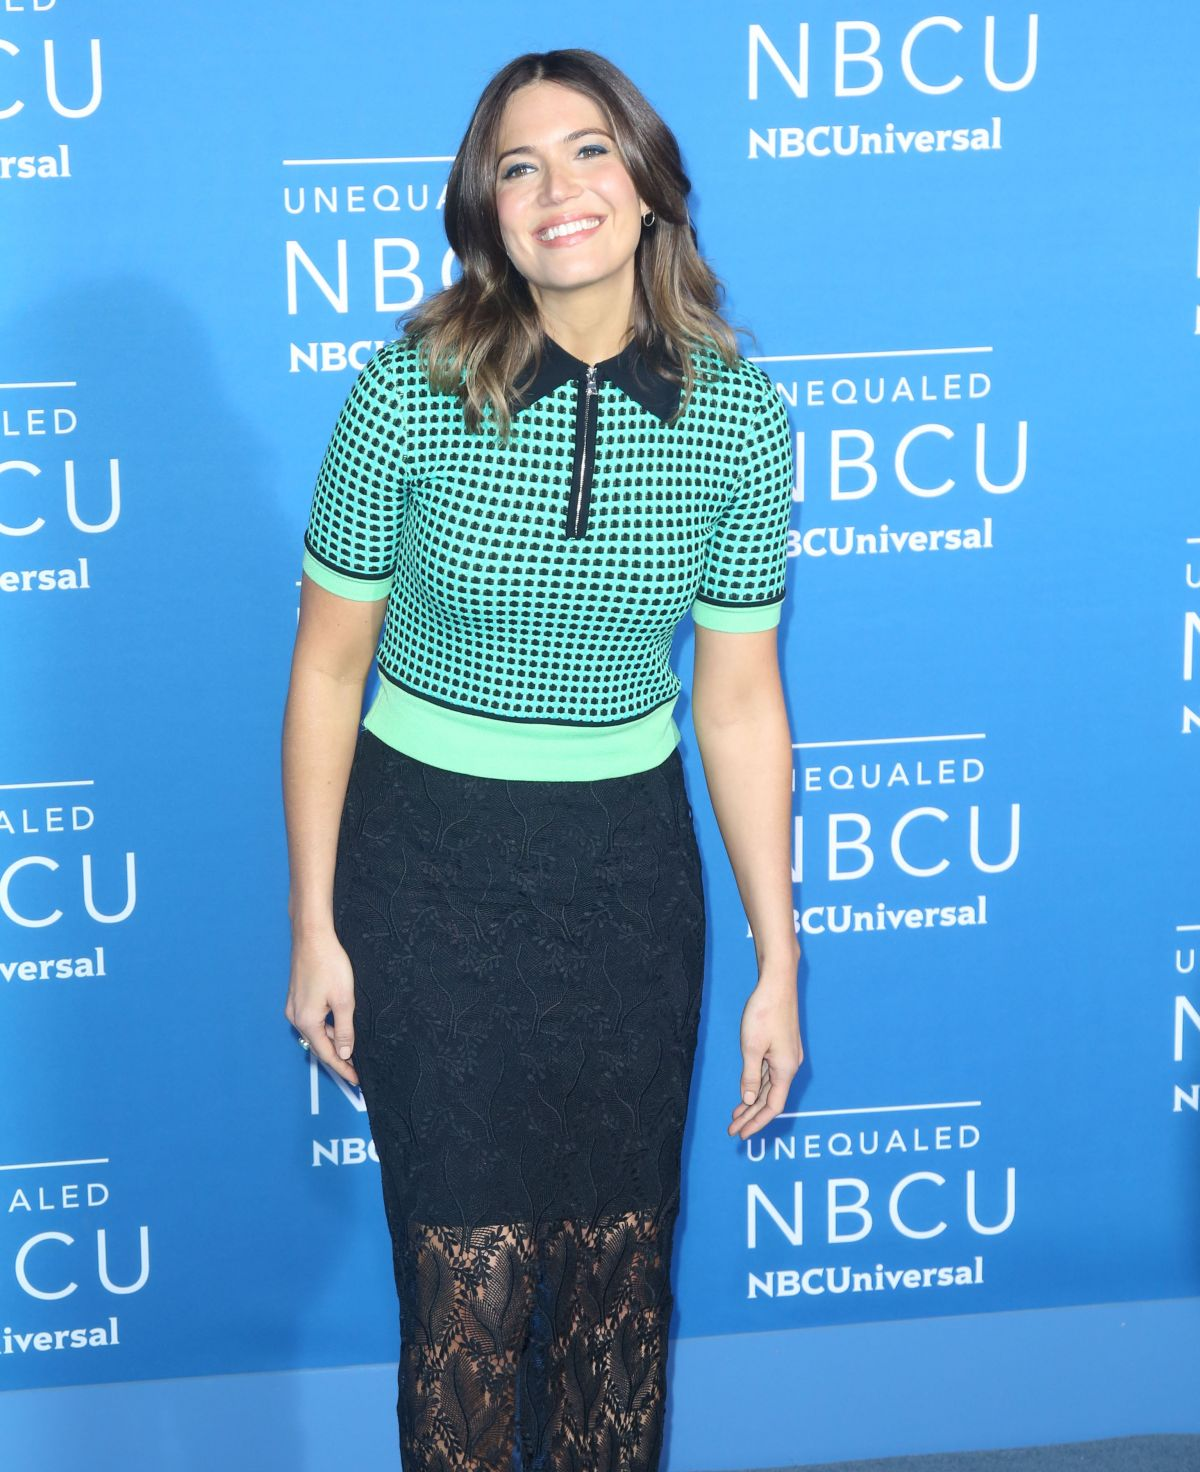 Mandy Moore At NBCUniversal Upfront in New York City   mandy-moore-at-nbcuniversal-upfront-in-new-york-city_11